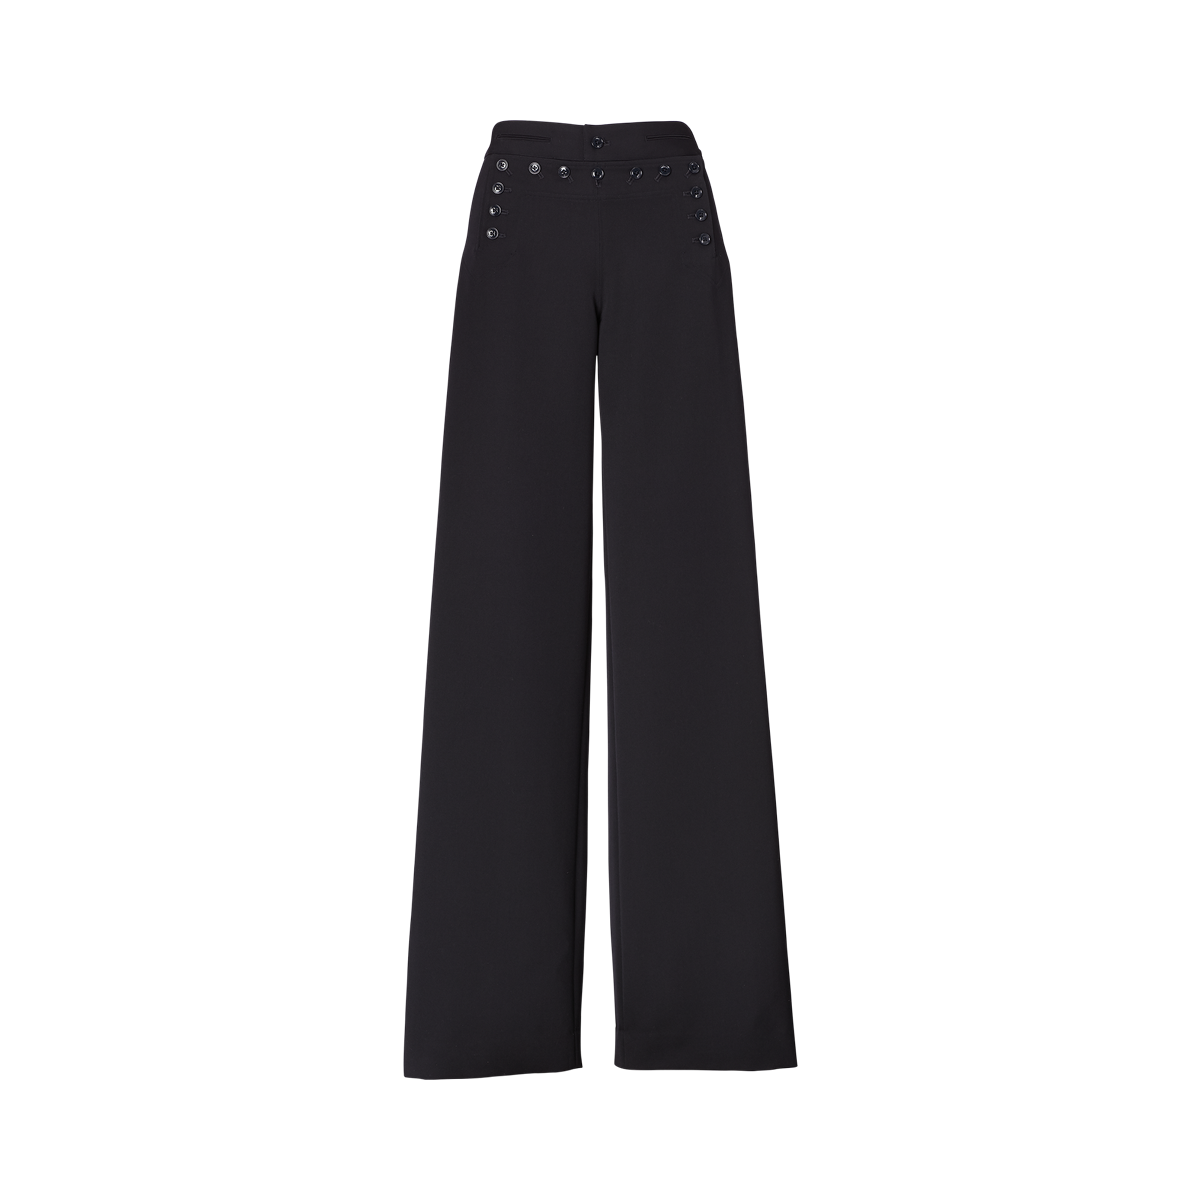 d3c5cd65610f The Sailor Pant